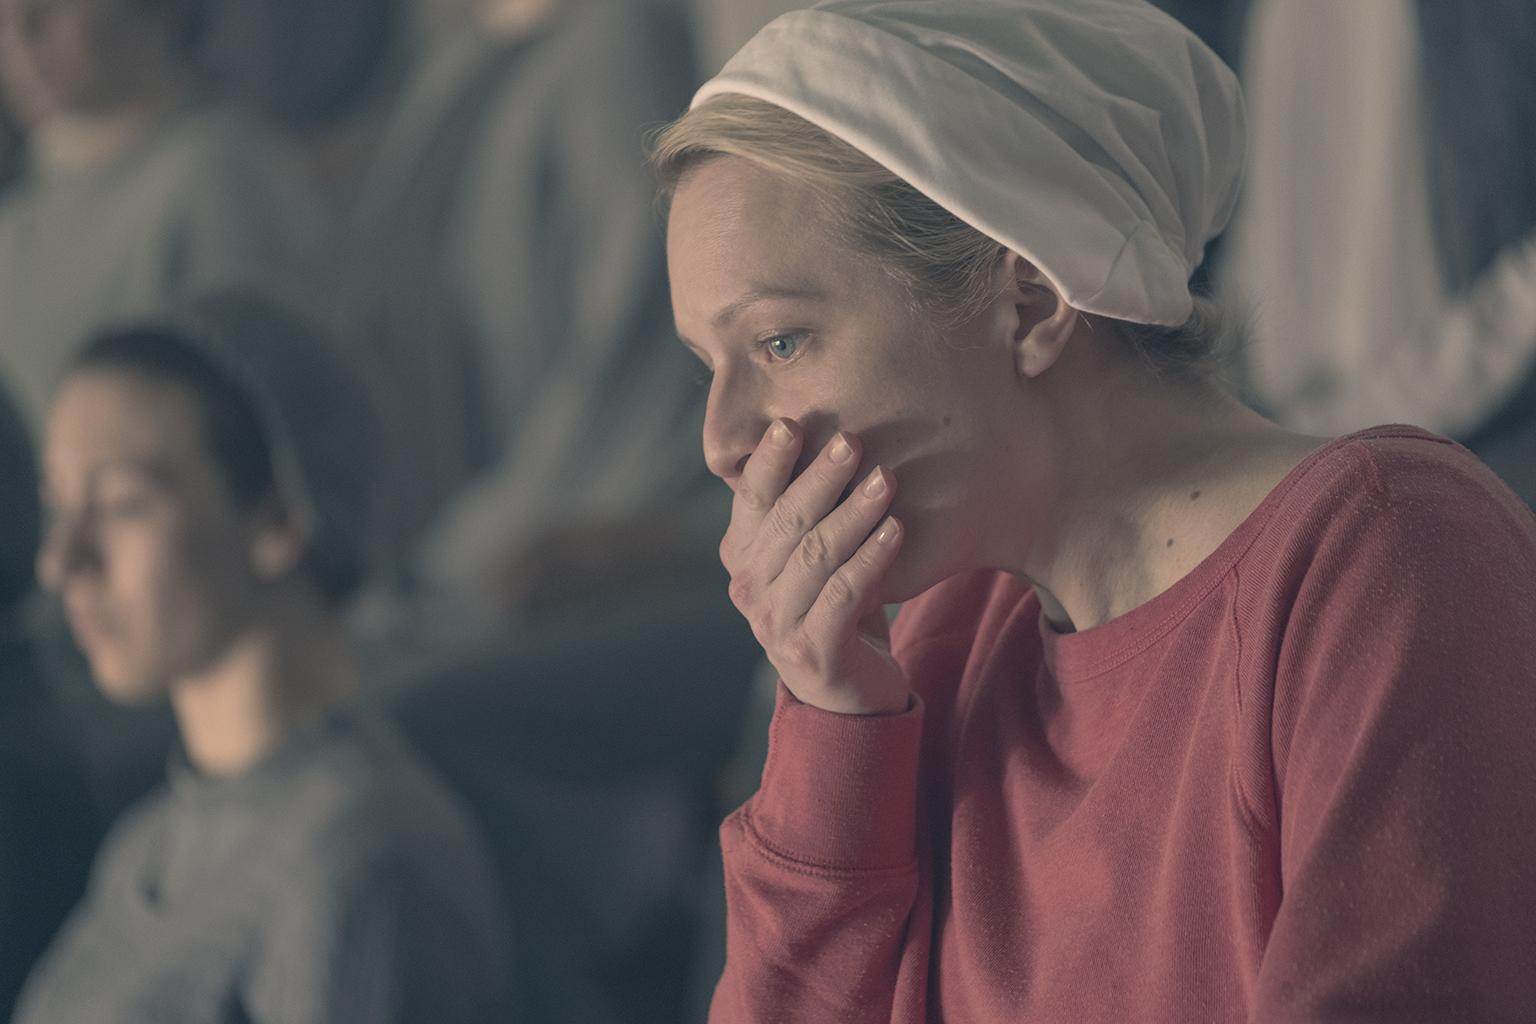 handmaid's tale season 3 - photo #2